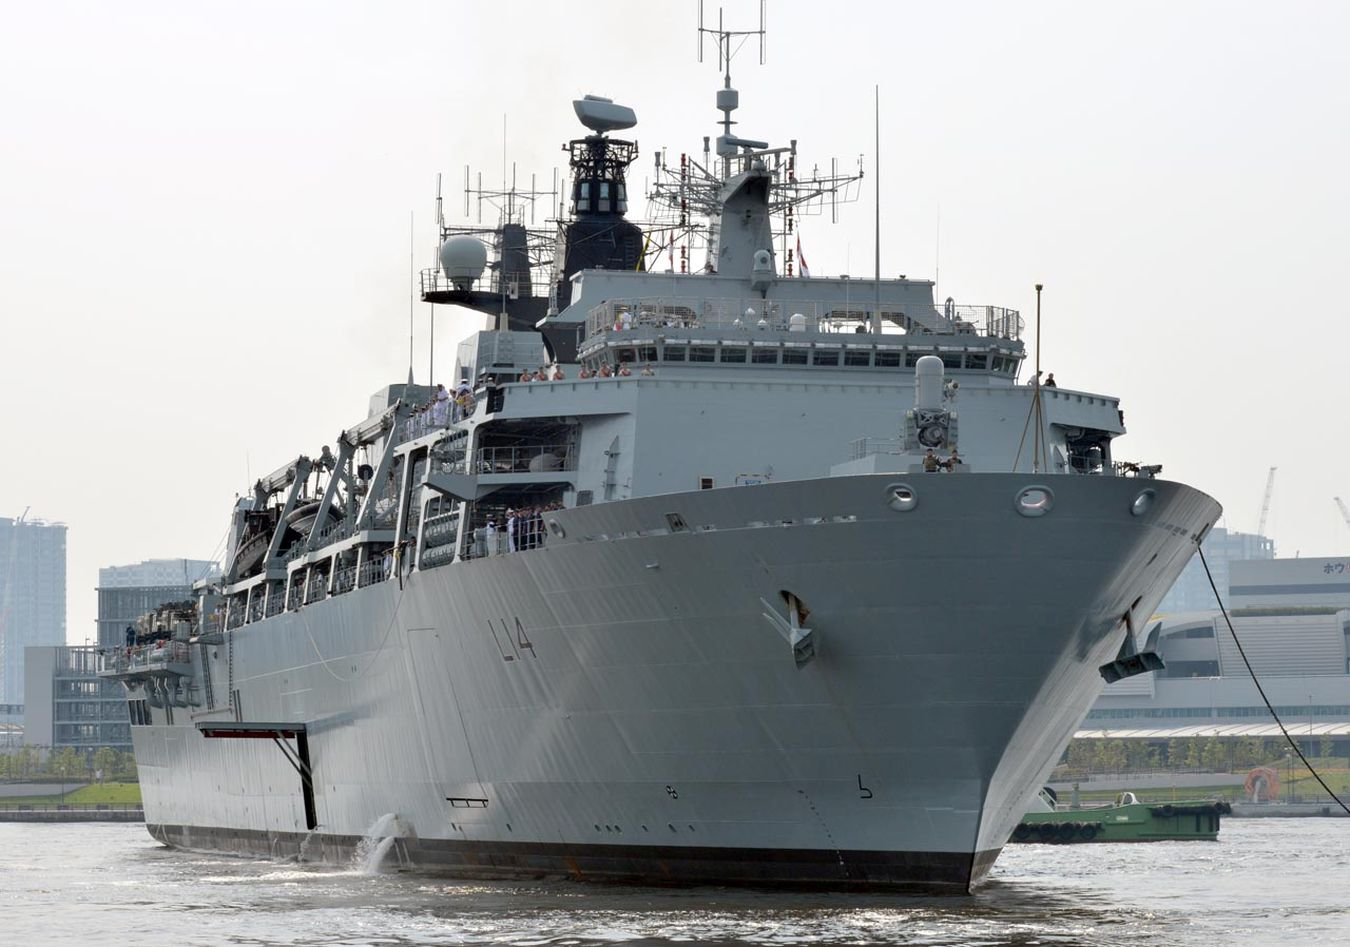 The British Have (Almost) Landed, and Japan Is Taking A Closer Look